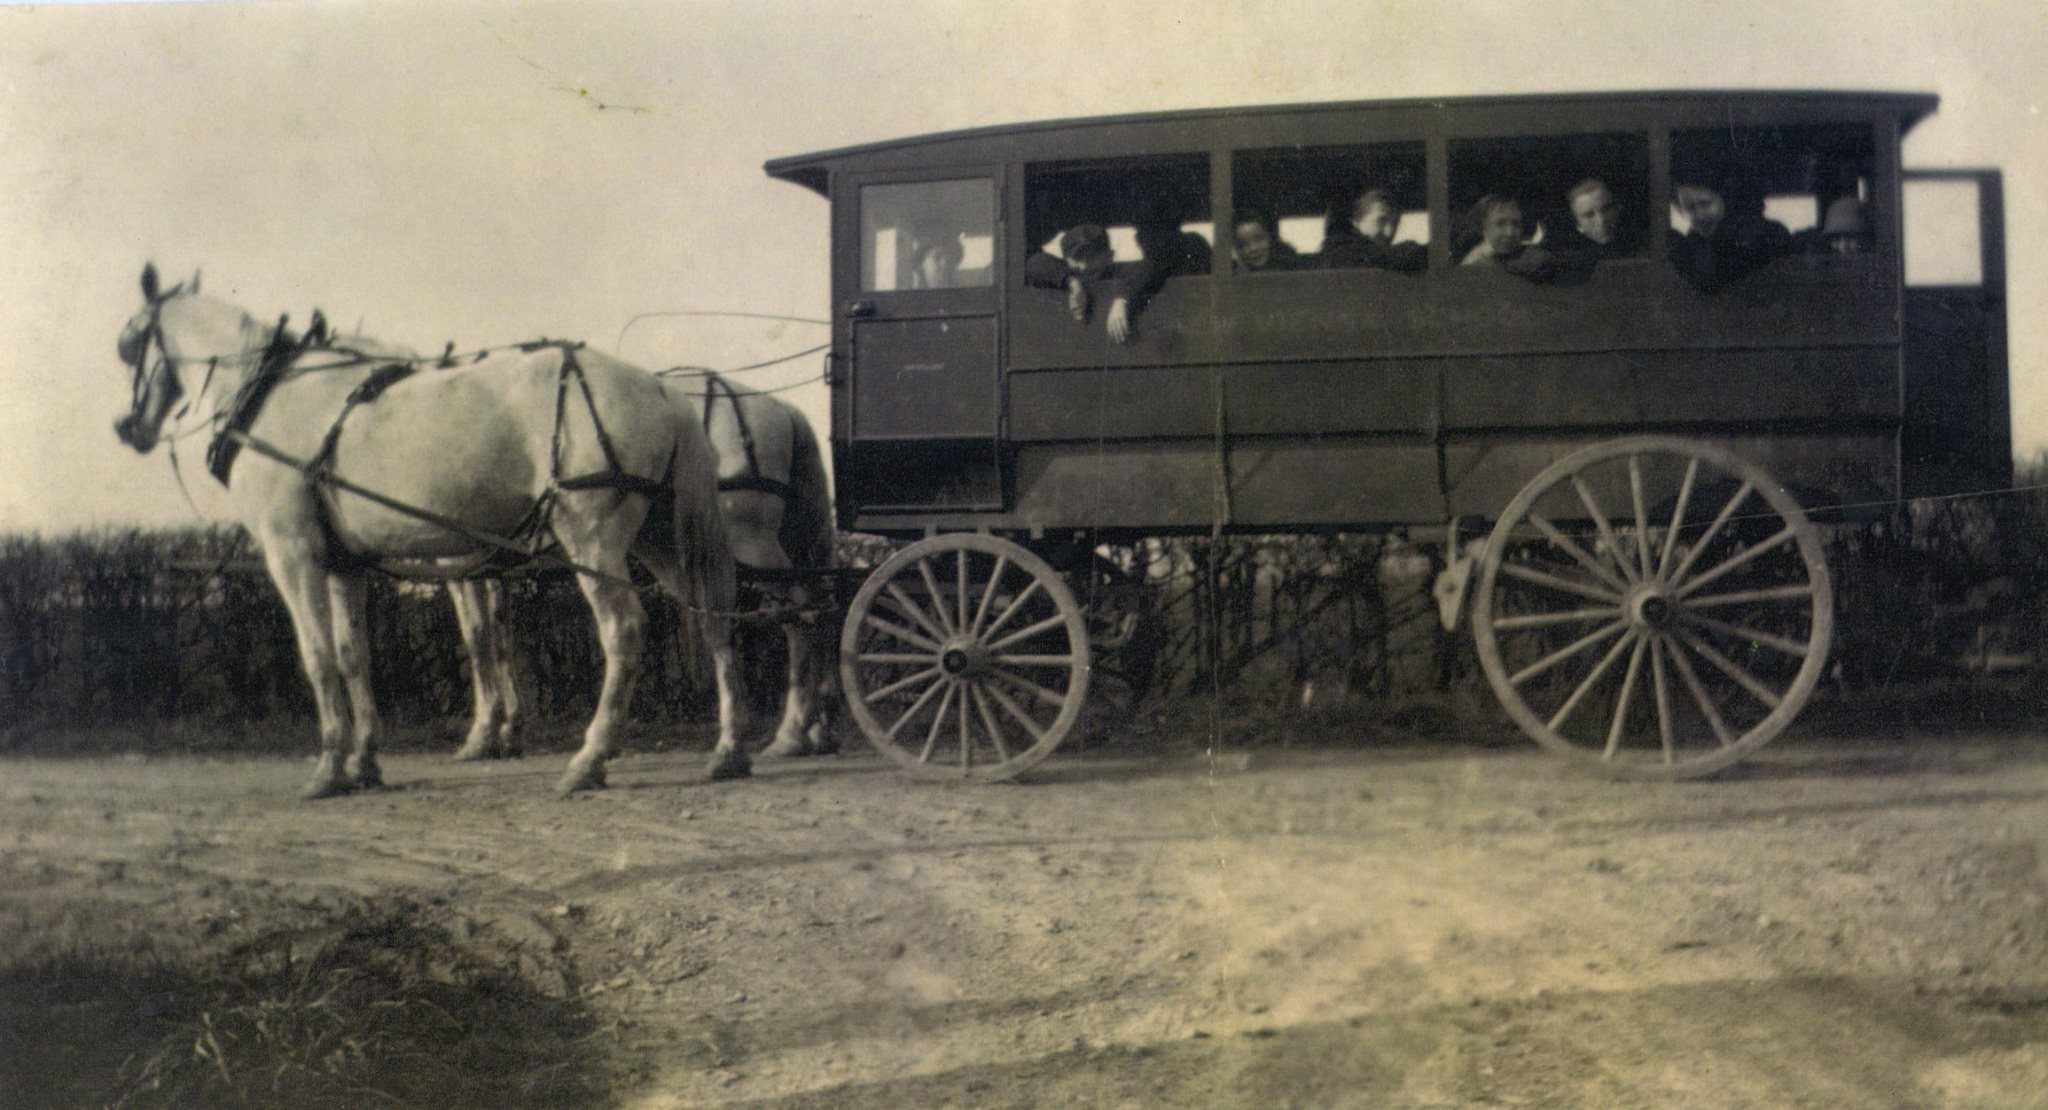 New Vienna School wagon taken by 8 year old Josephine Williams about 1918, with her brownie box camera.